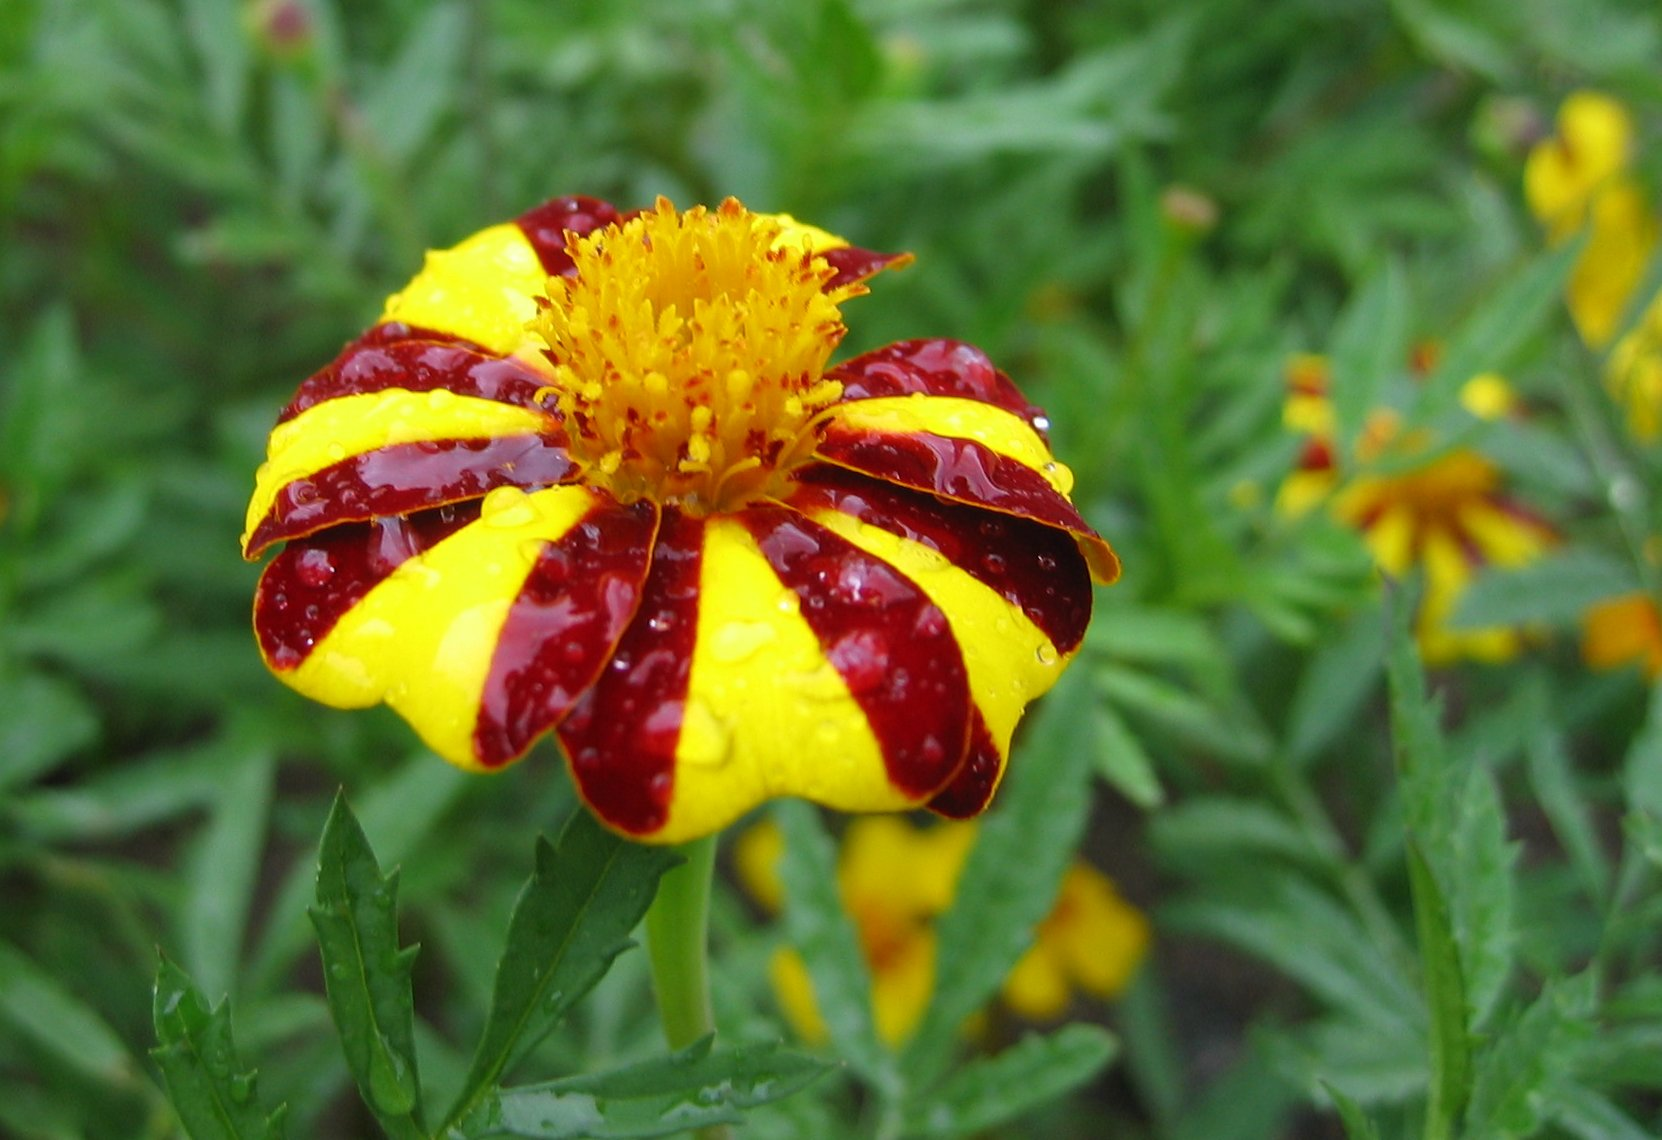 Filered and yellow flowerg wikimedia commons filered and yellow flowerg izmirmasajfo